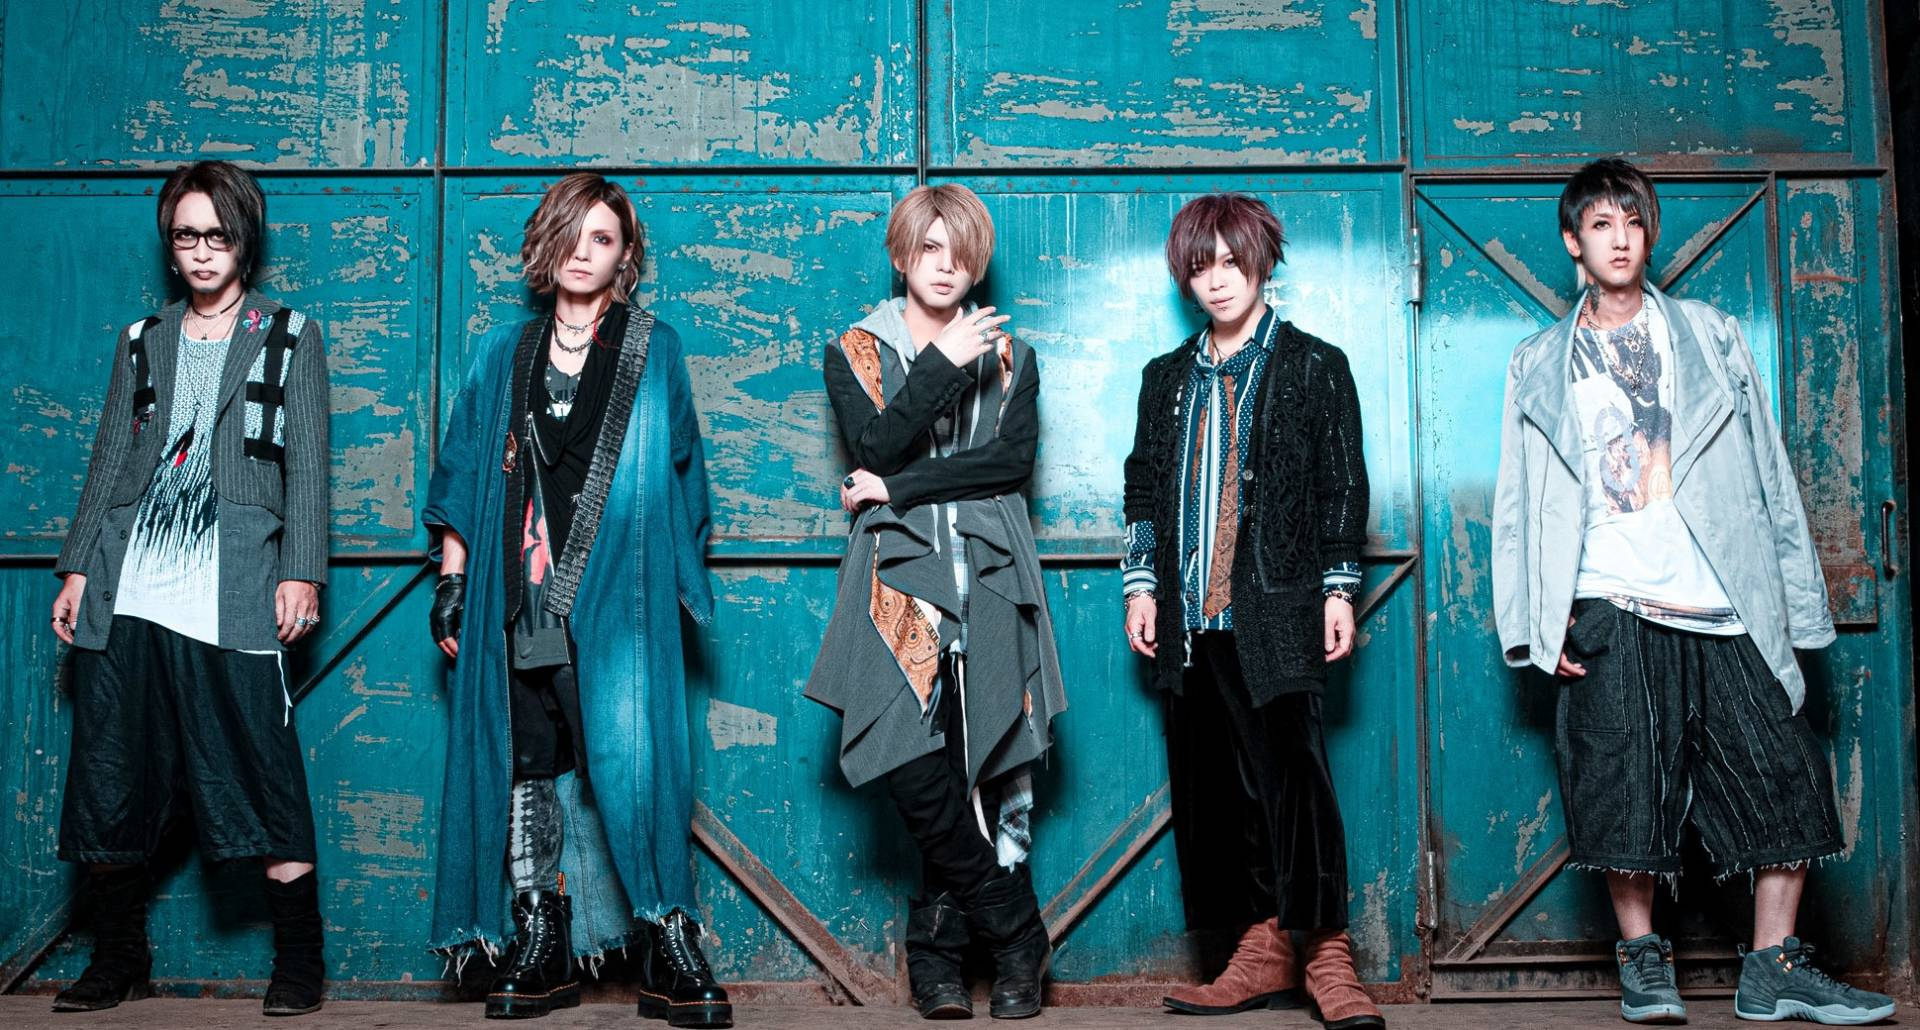 Visual rock band vistlip's first double-disc compilation drops on December 23rd.